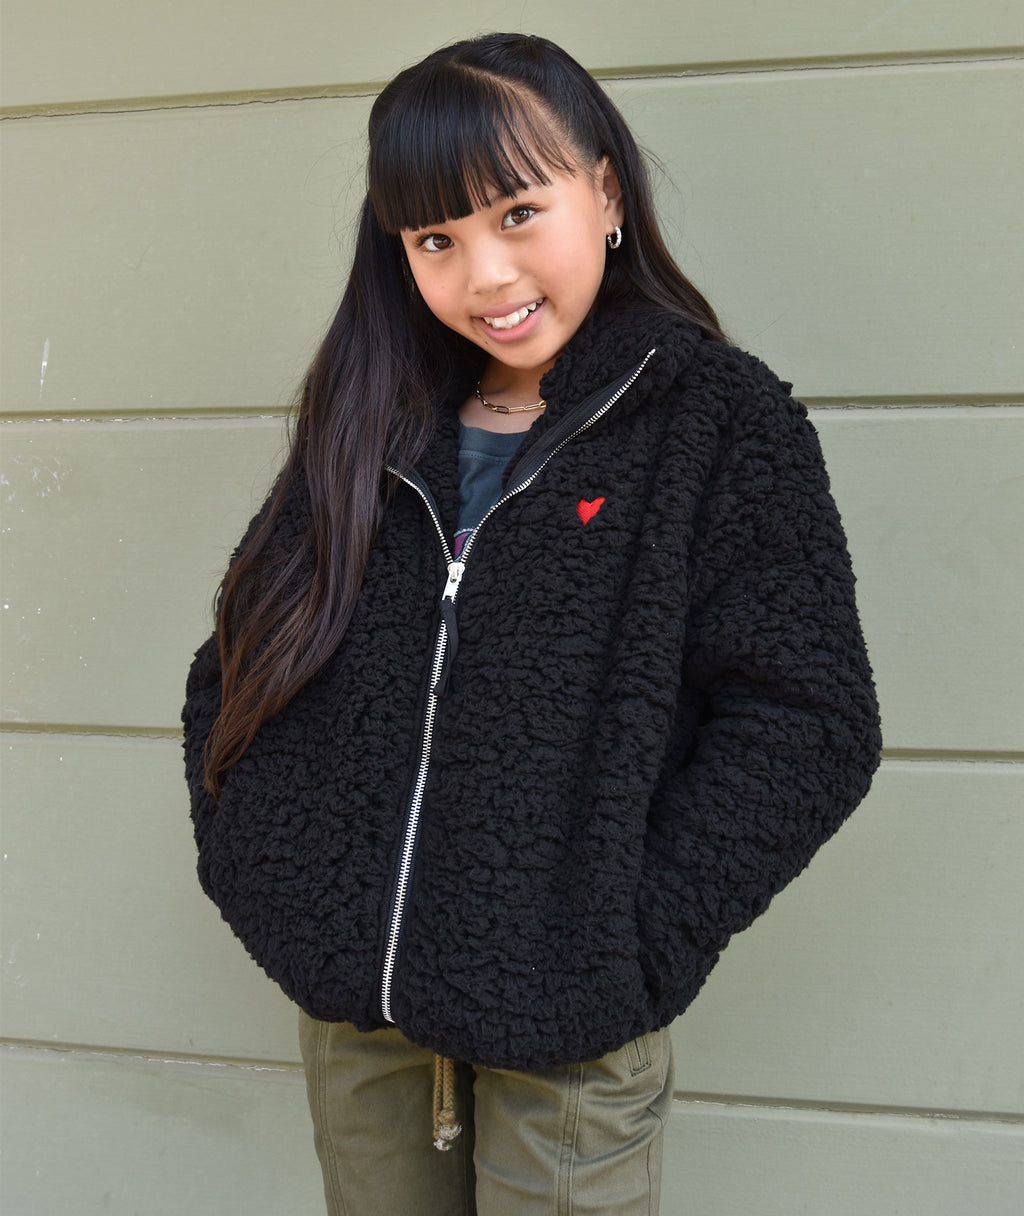 Sub_Urban Riot Girls Black Heart Teddy Jacket